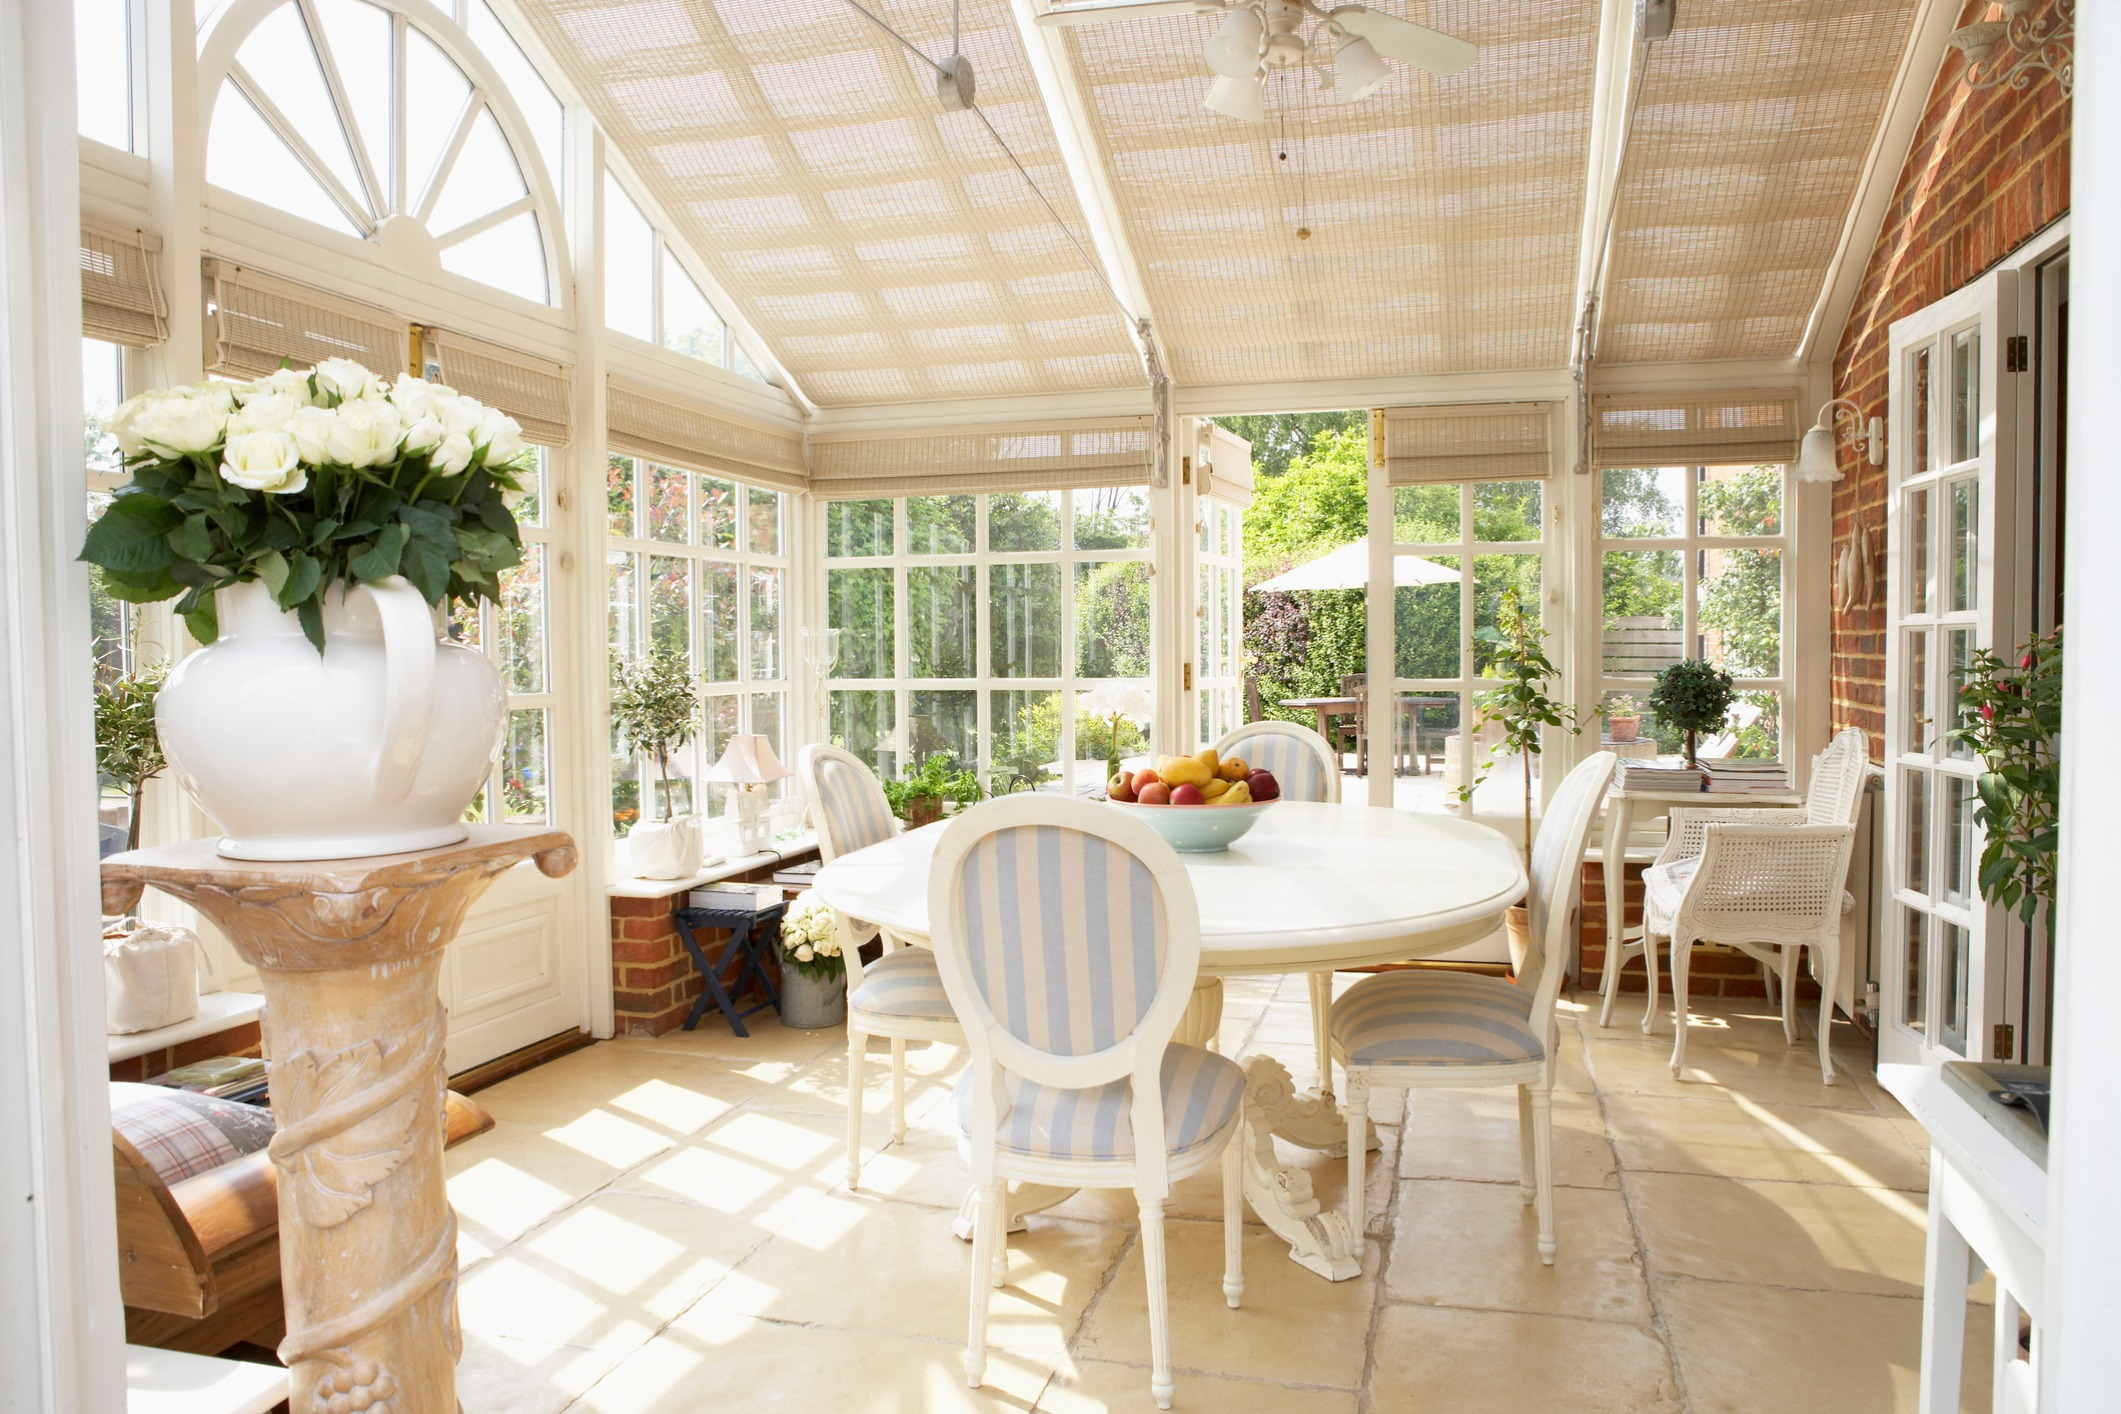 How A Sunroom Can Make Summer Better